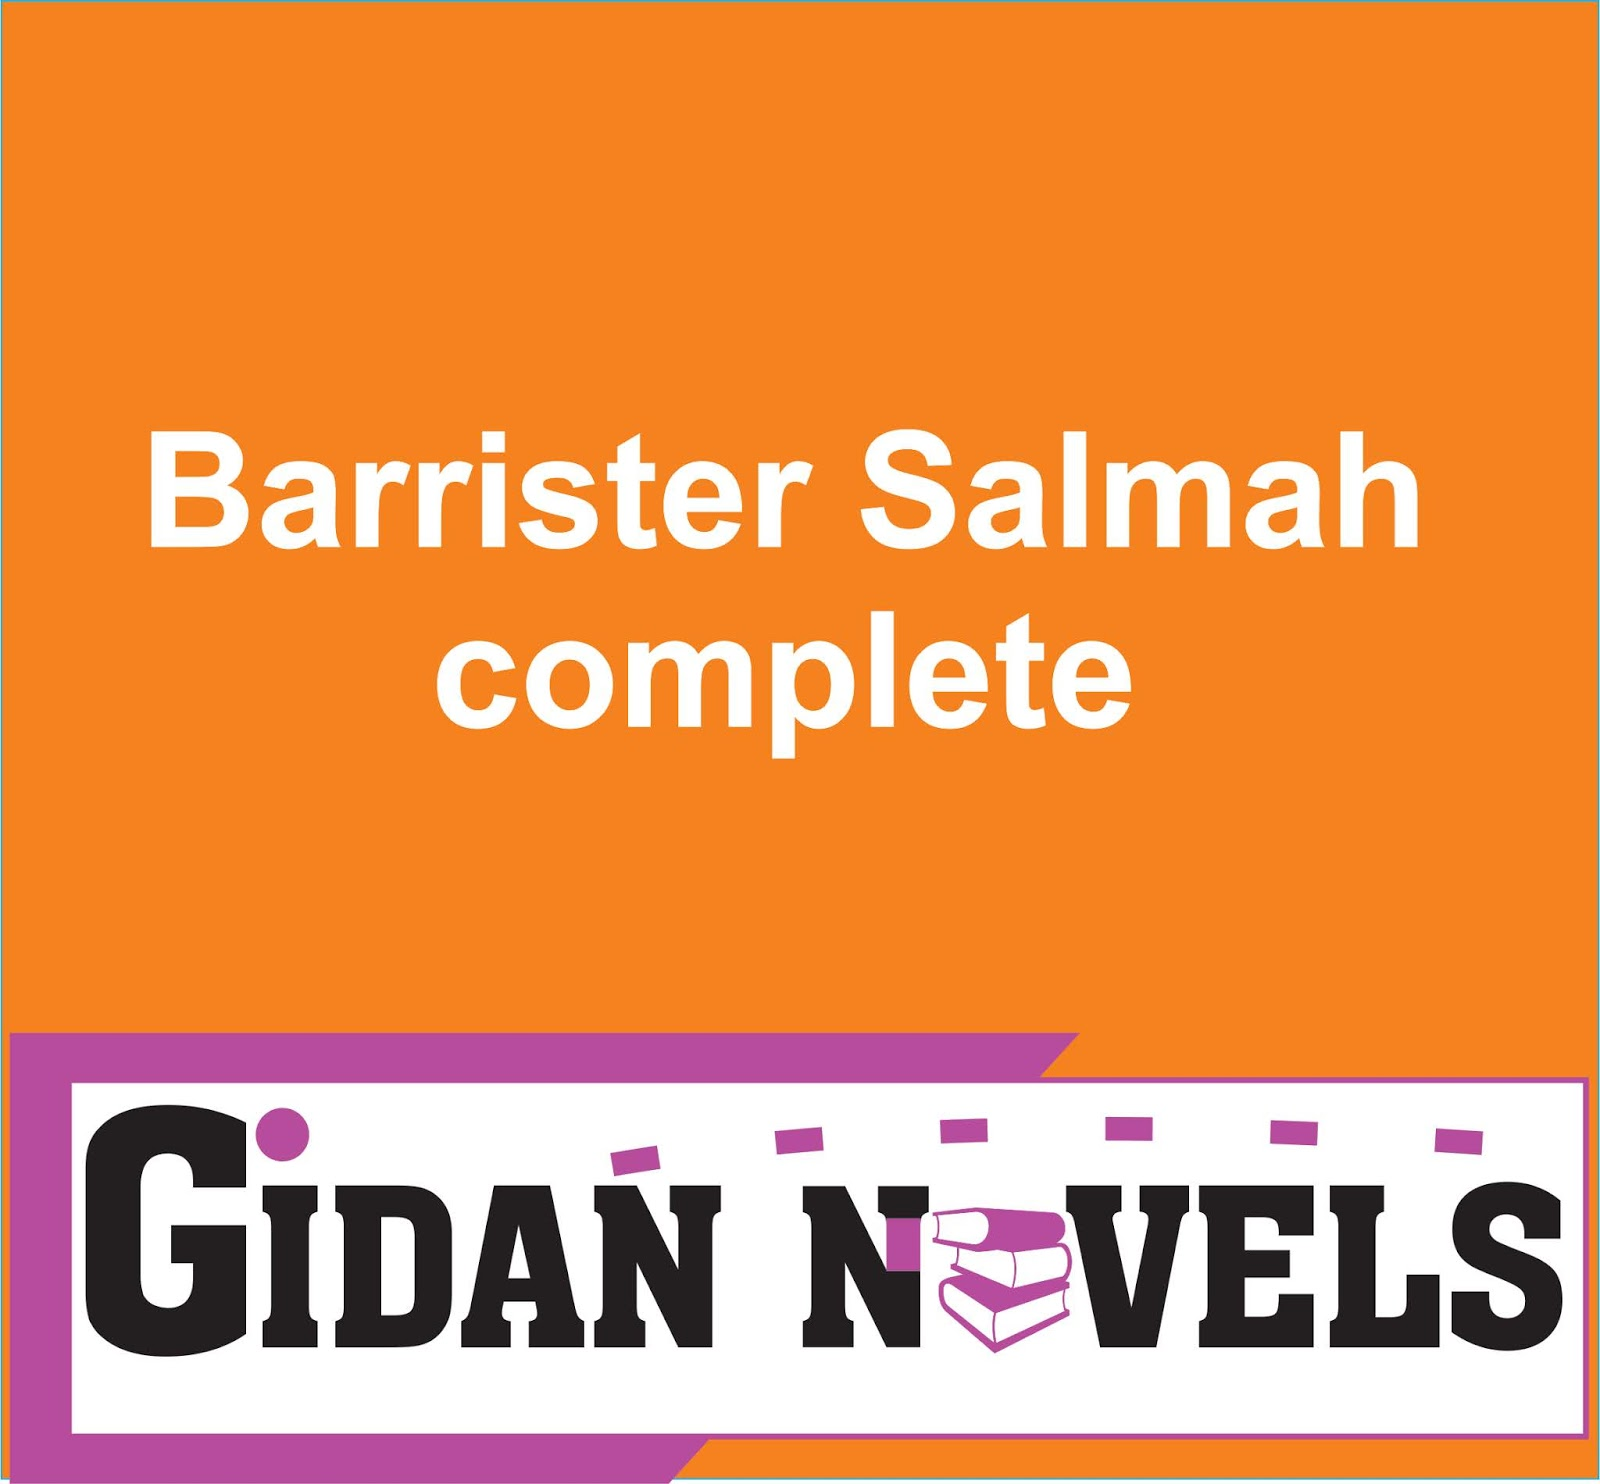 Barrister Salmah complete hausa novel document - Gidan Novels